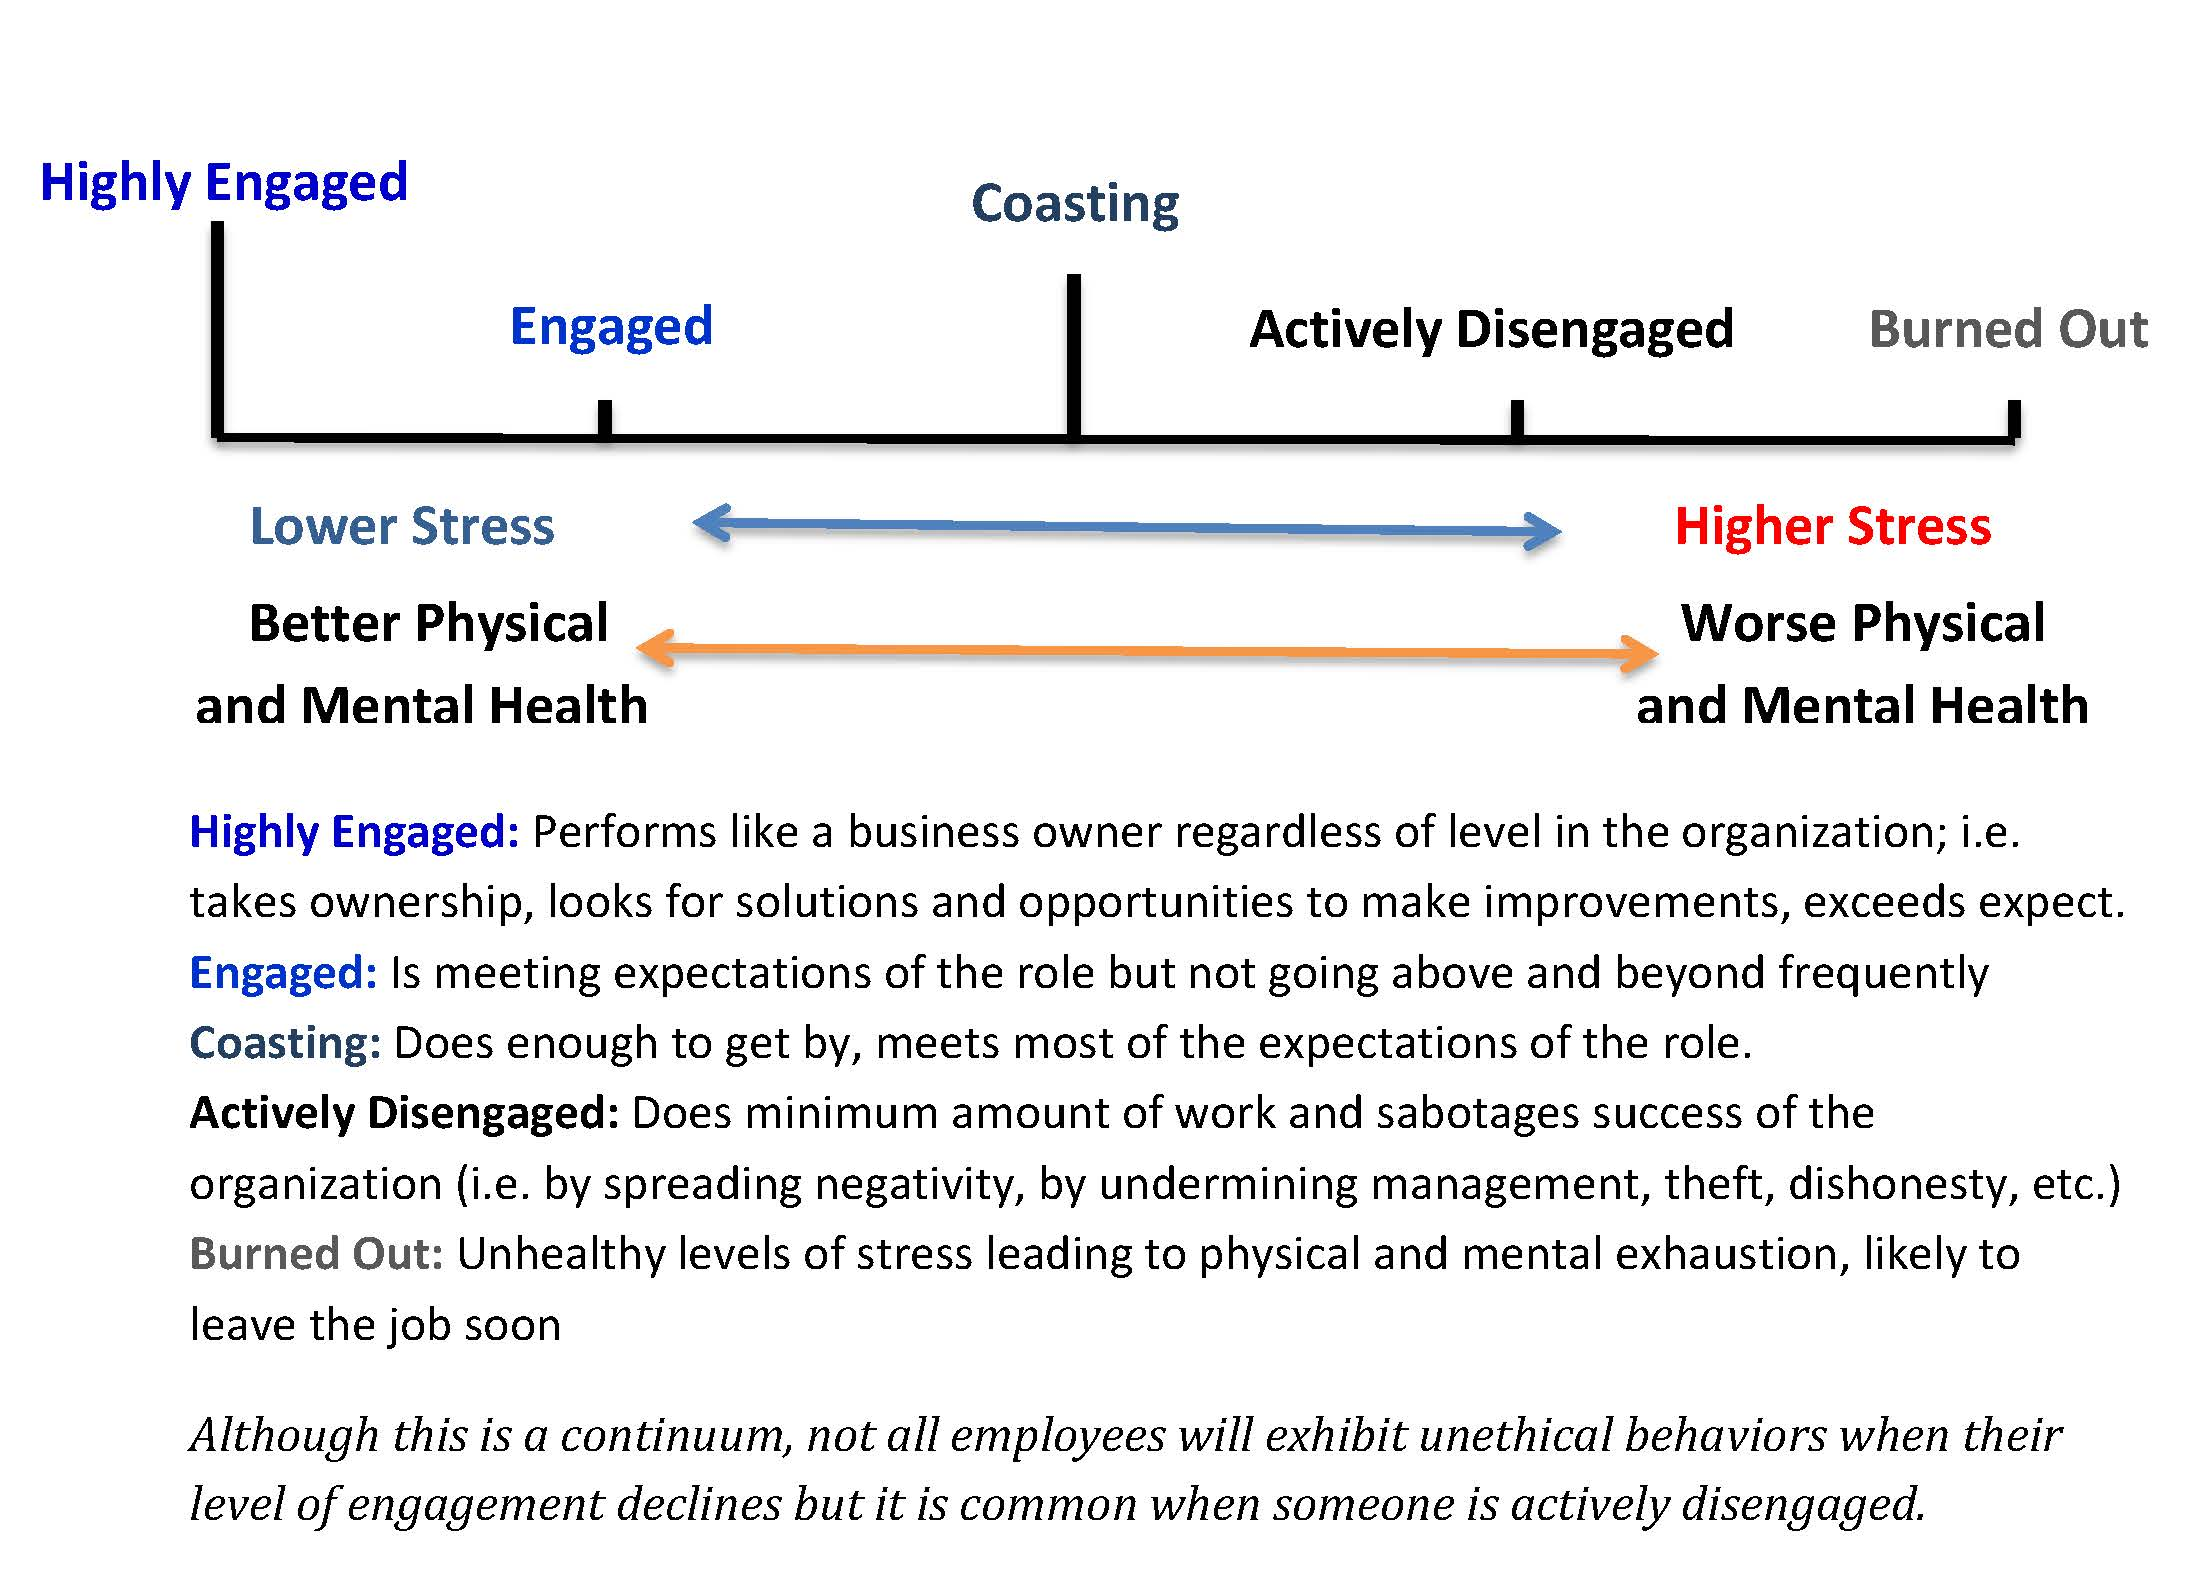 Employee Engagement to Burnout continuum